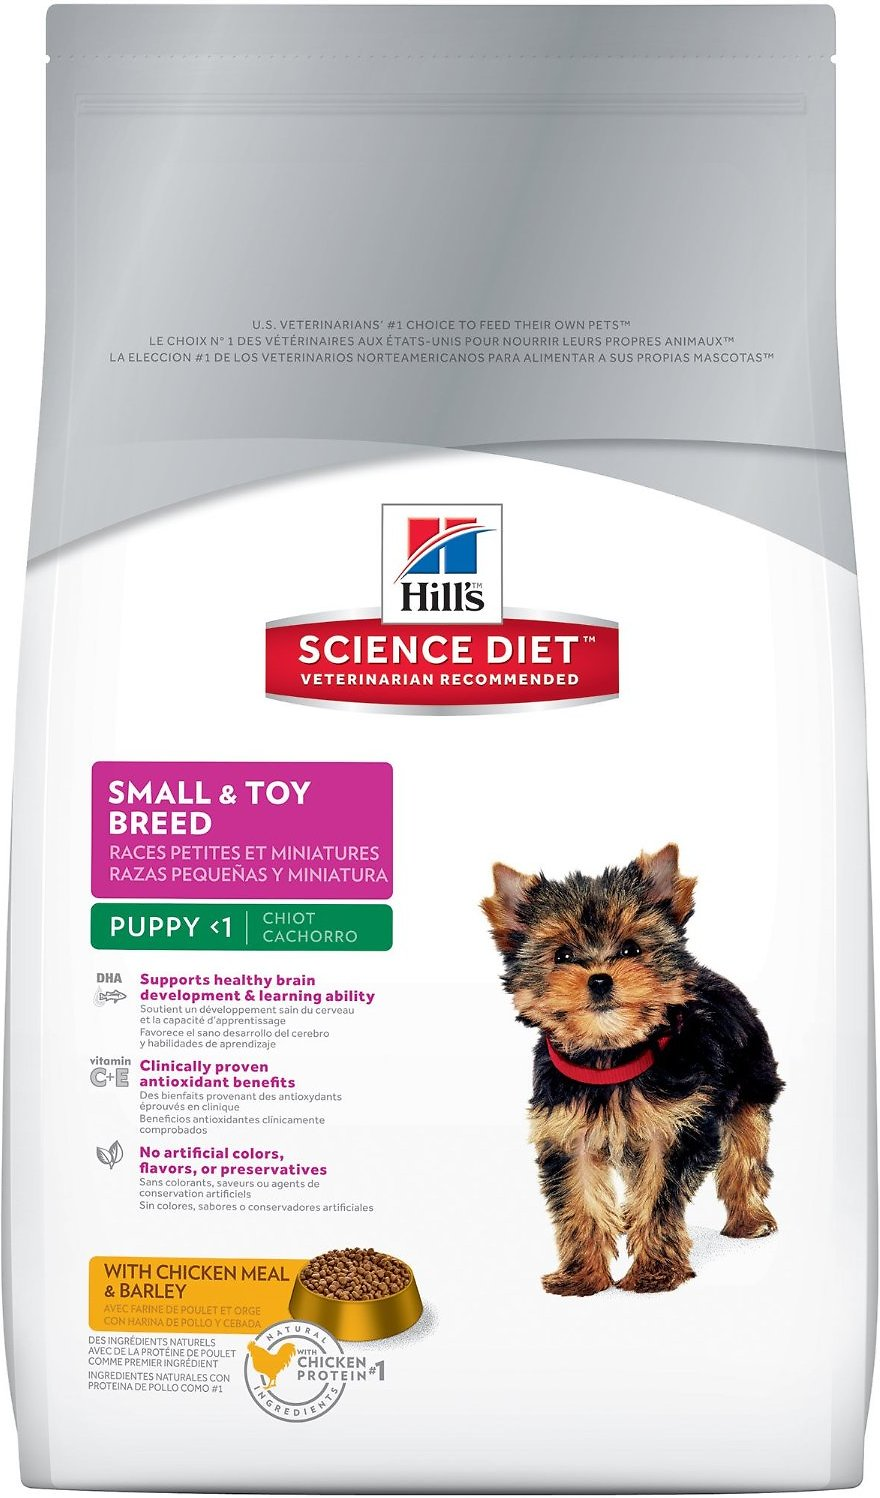 Hill's Science Diet Puppy Small & Toy Breed Dry Dog Food Image